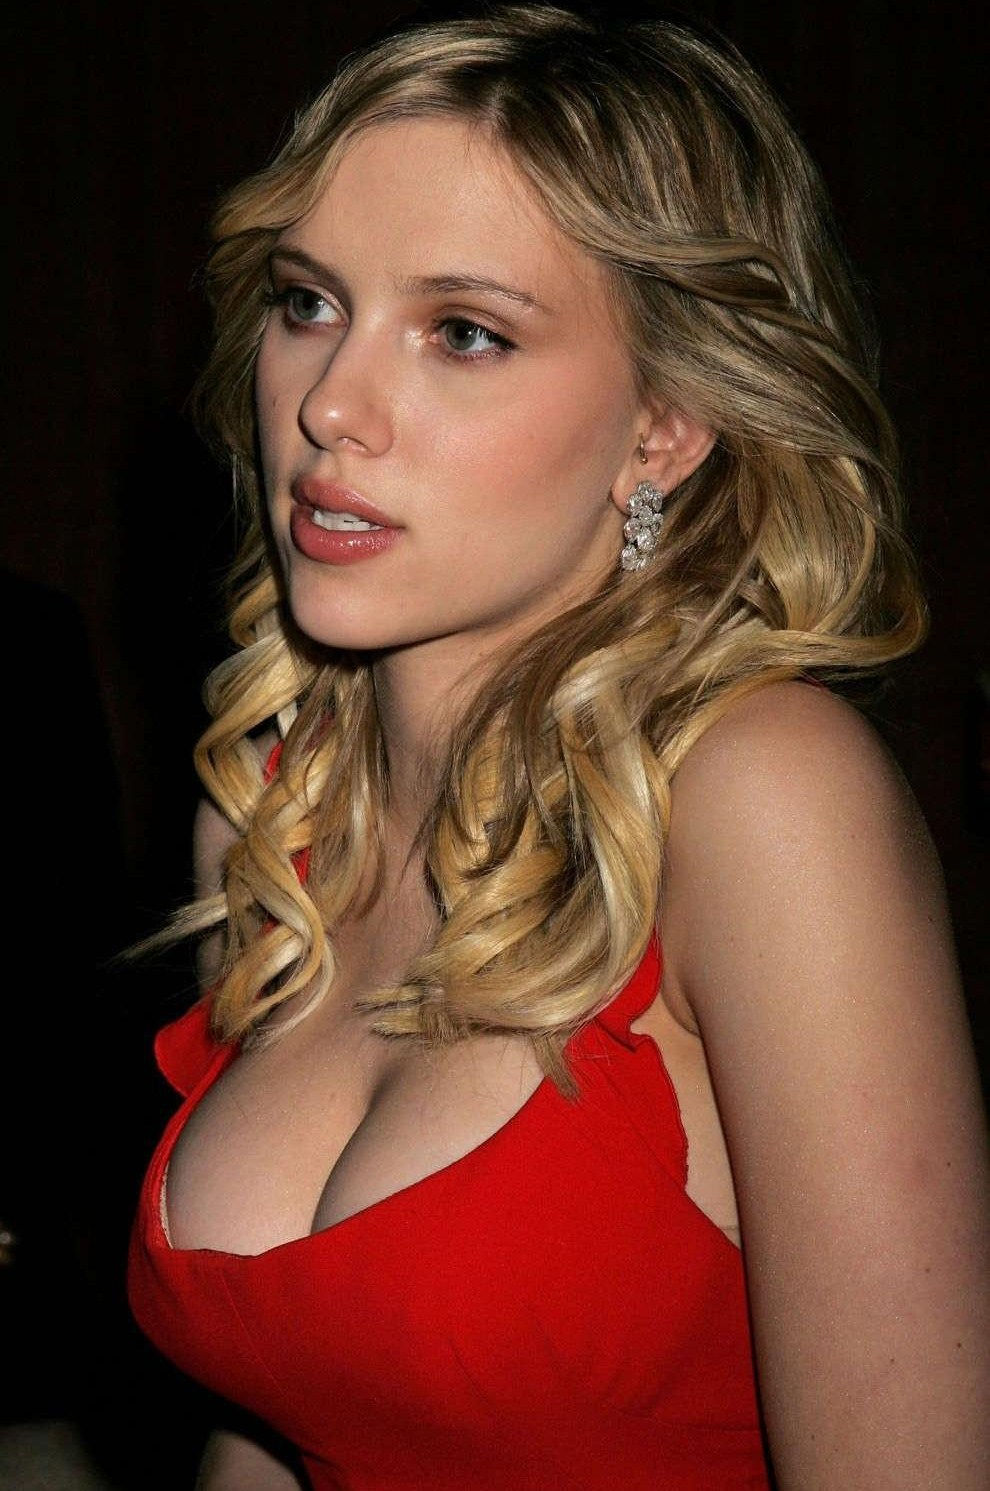 Scarlett Johansson Bra Size Age Weight Height Measurements on oscar mendez plastic